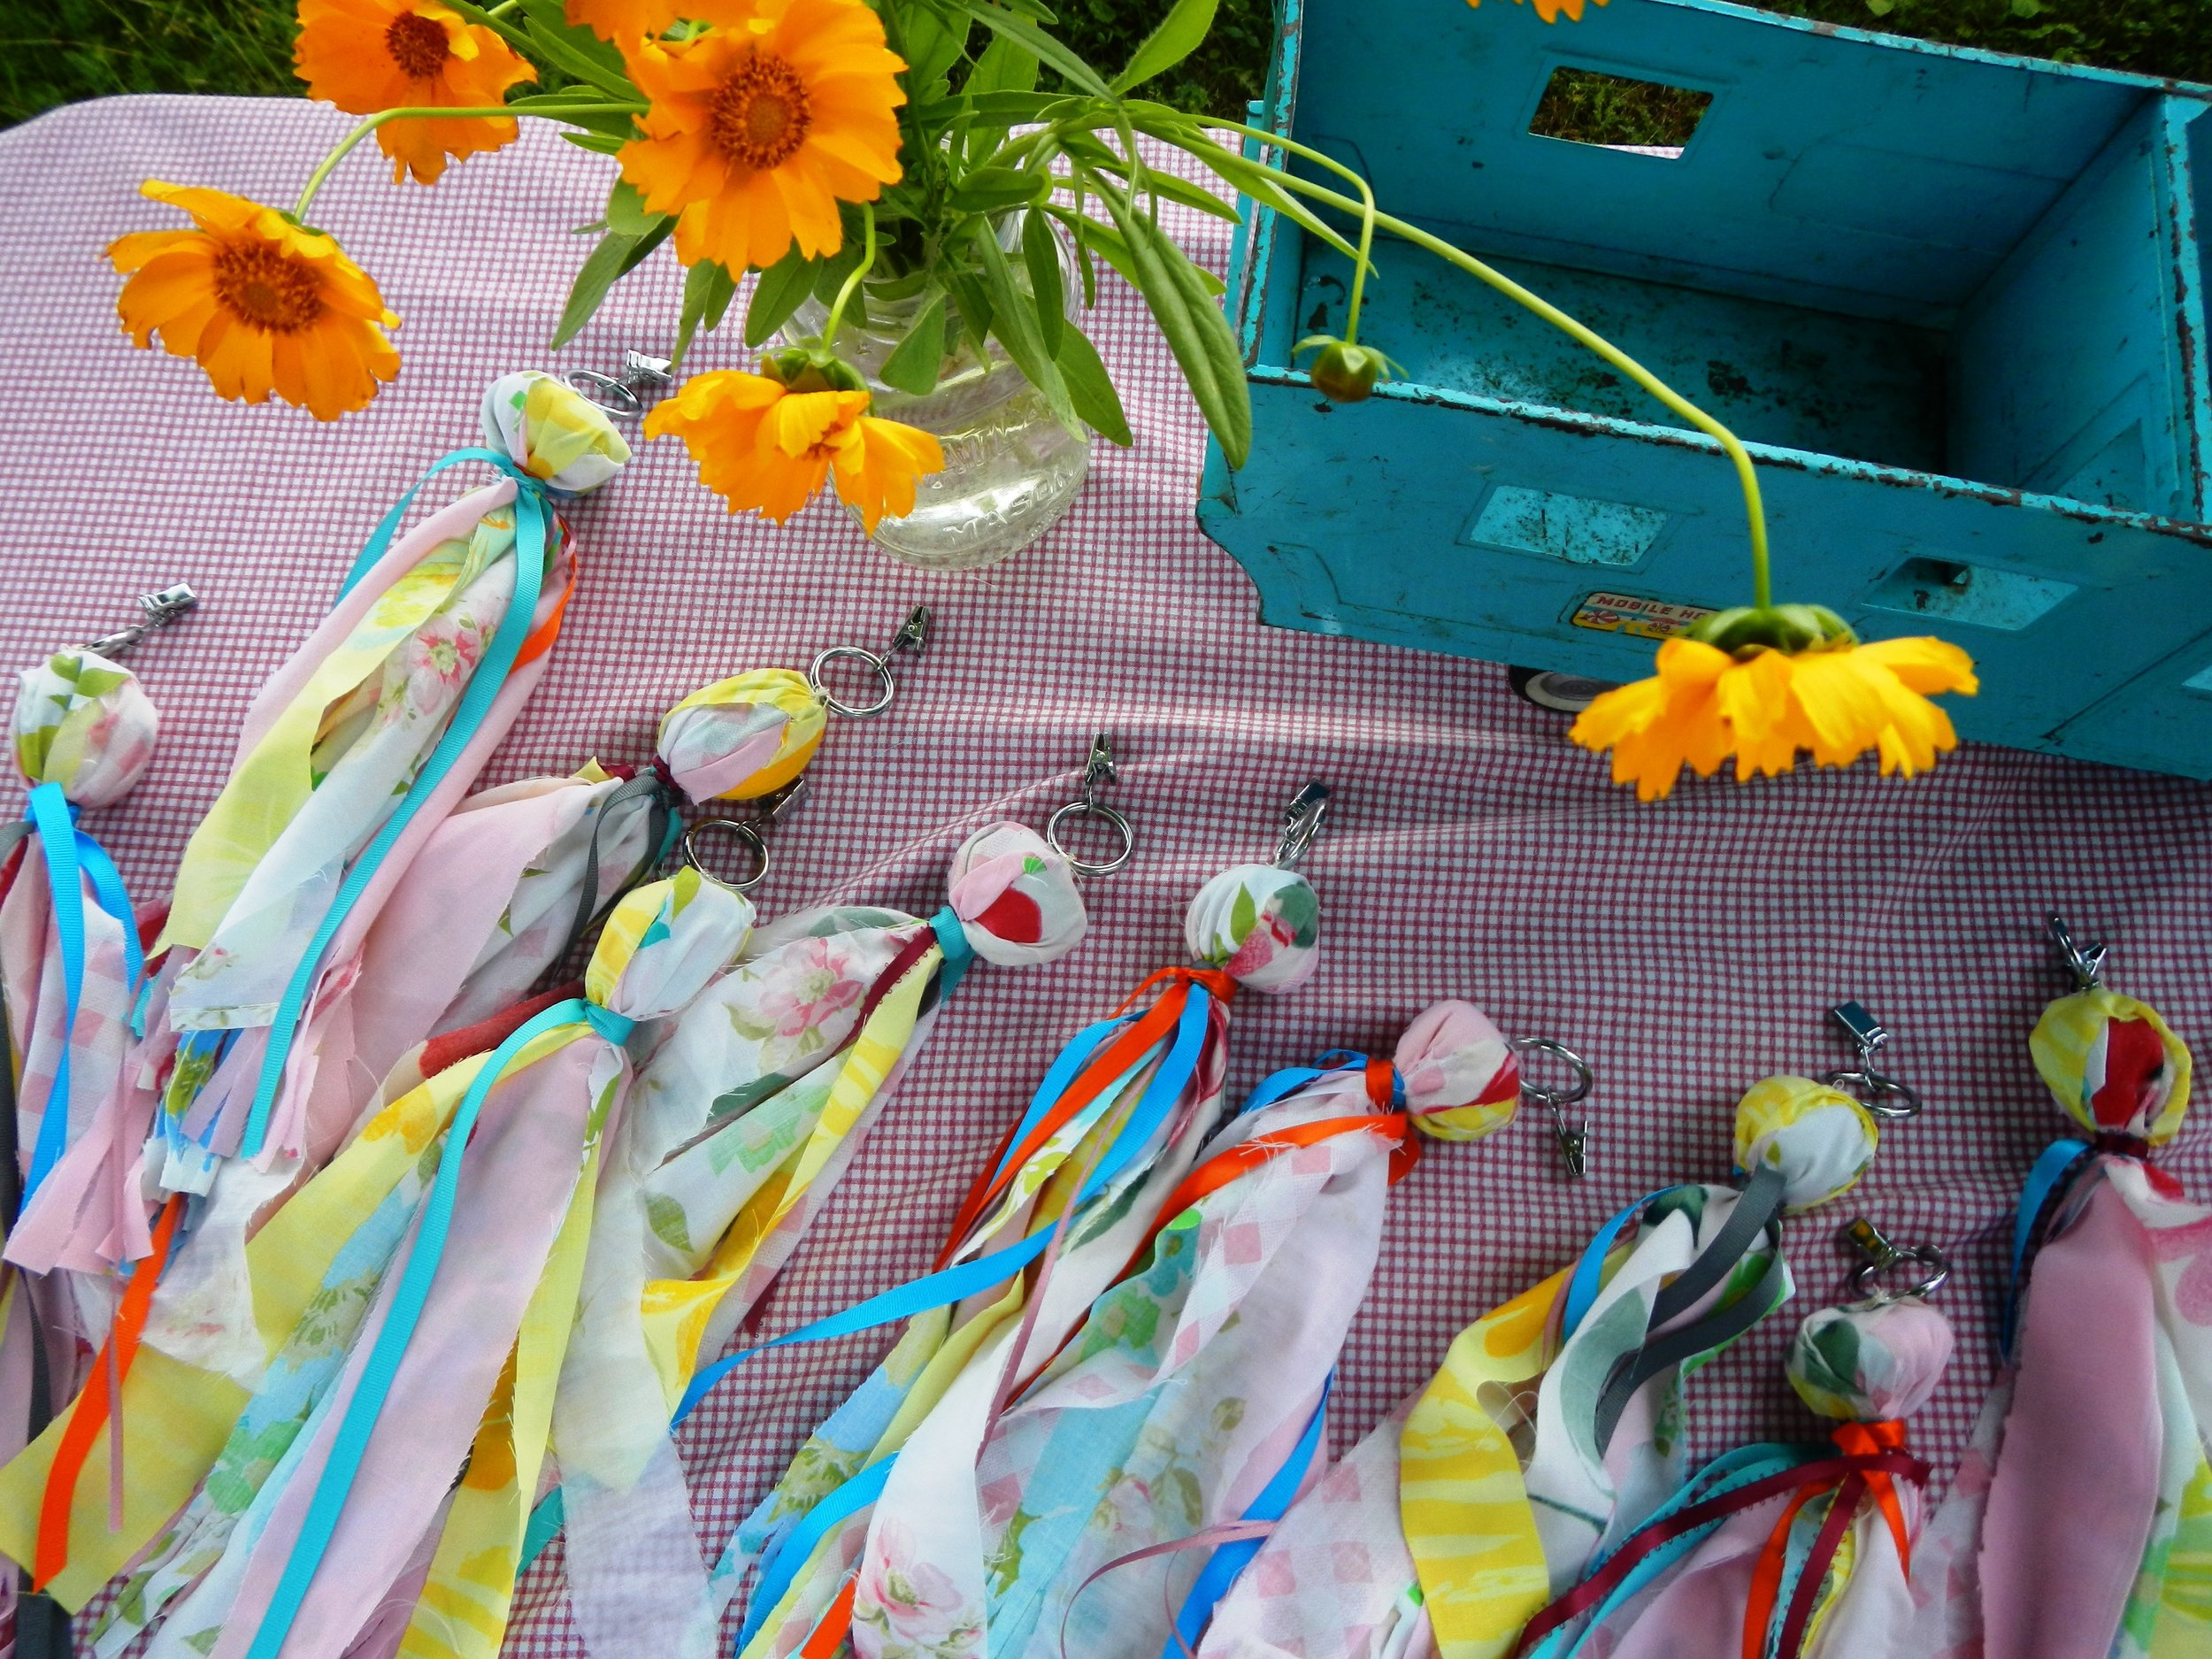 Made these Picnic Clips Weights to Keep the Picnic Table Cloth from blowing around. So much fun. A rock, a curtain clip and some vintage colorful sheets and ribbons — fun and easy.  Here is the STEP BY STEP on DIY NETWORK.